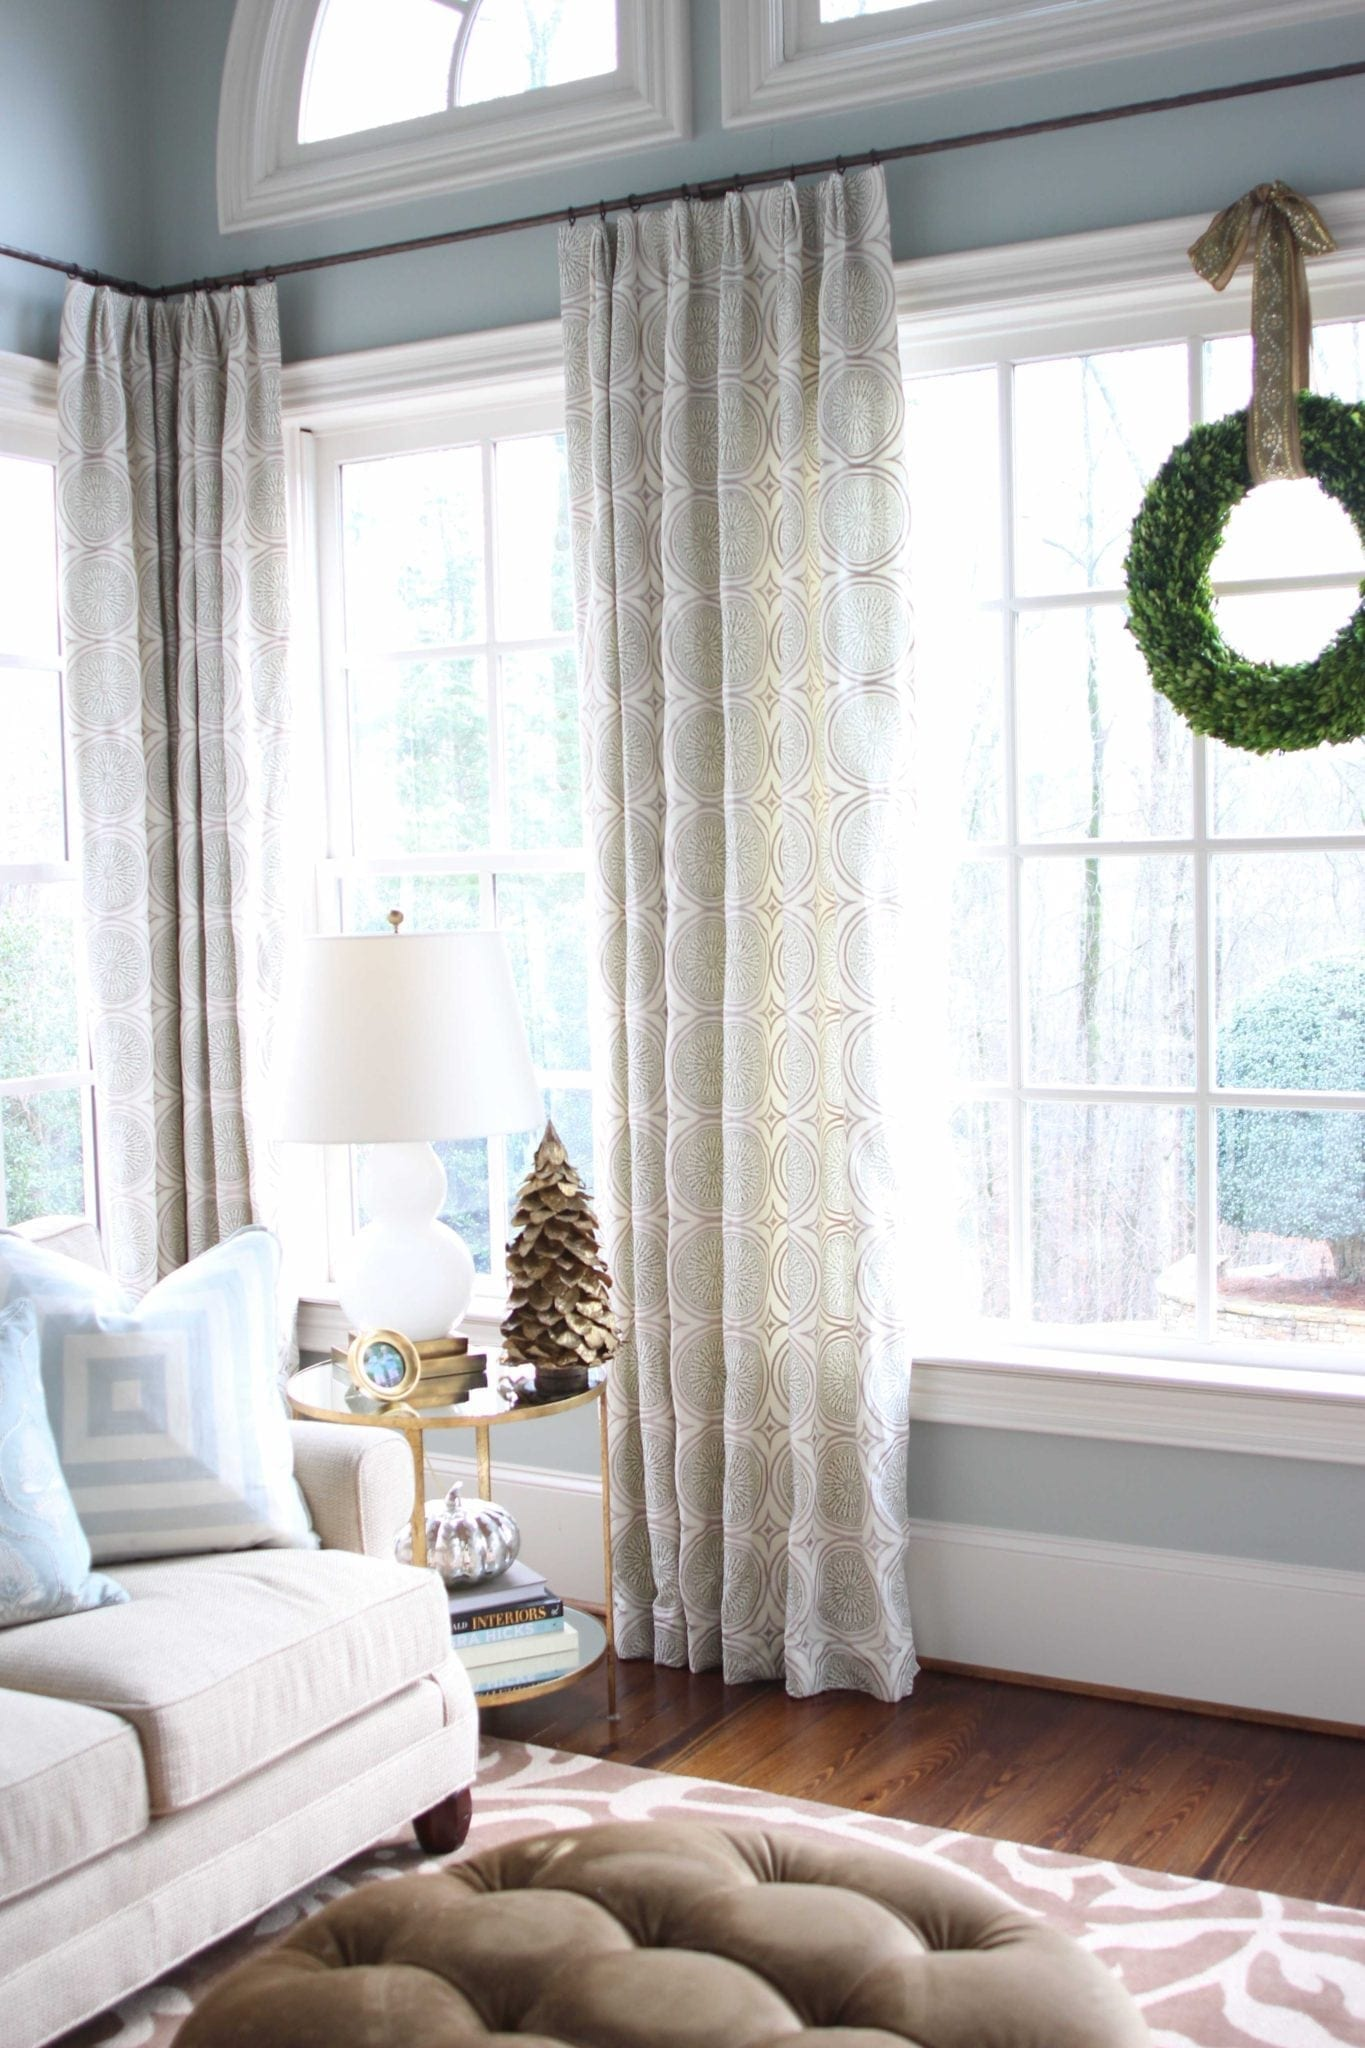 Simple rustic holiday decor with boxwood.